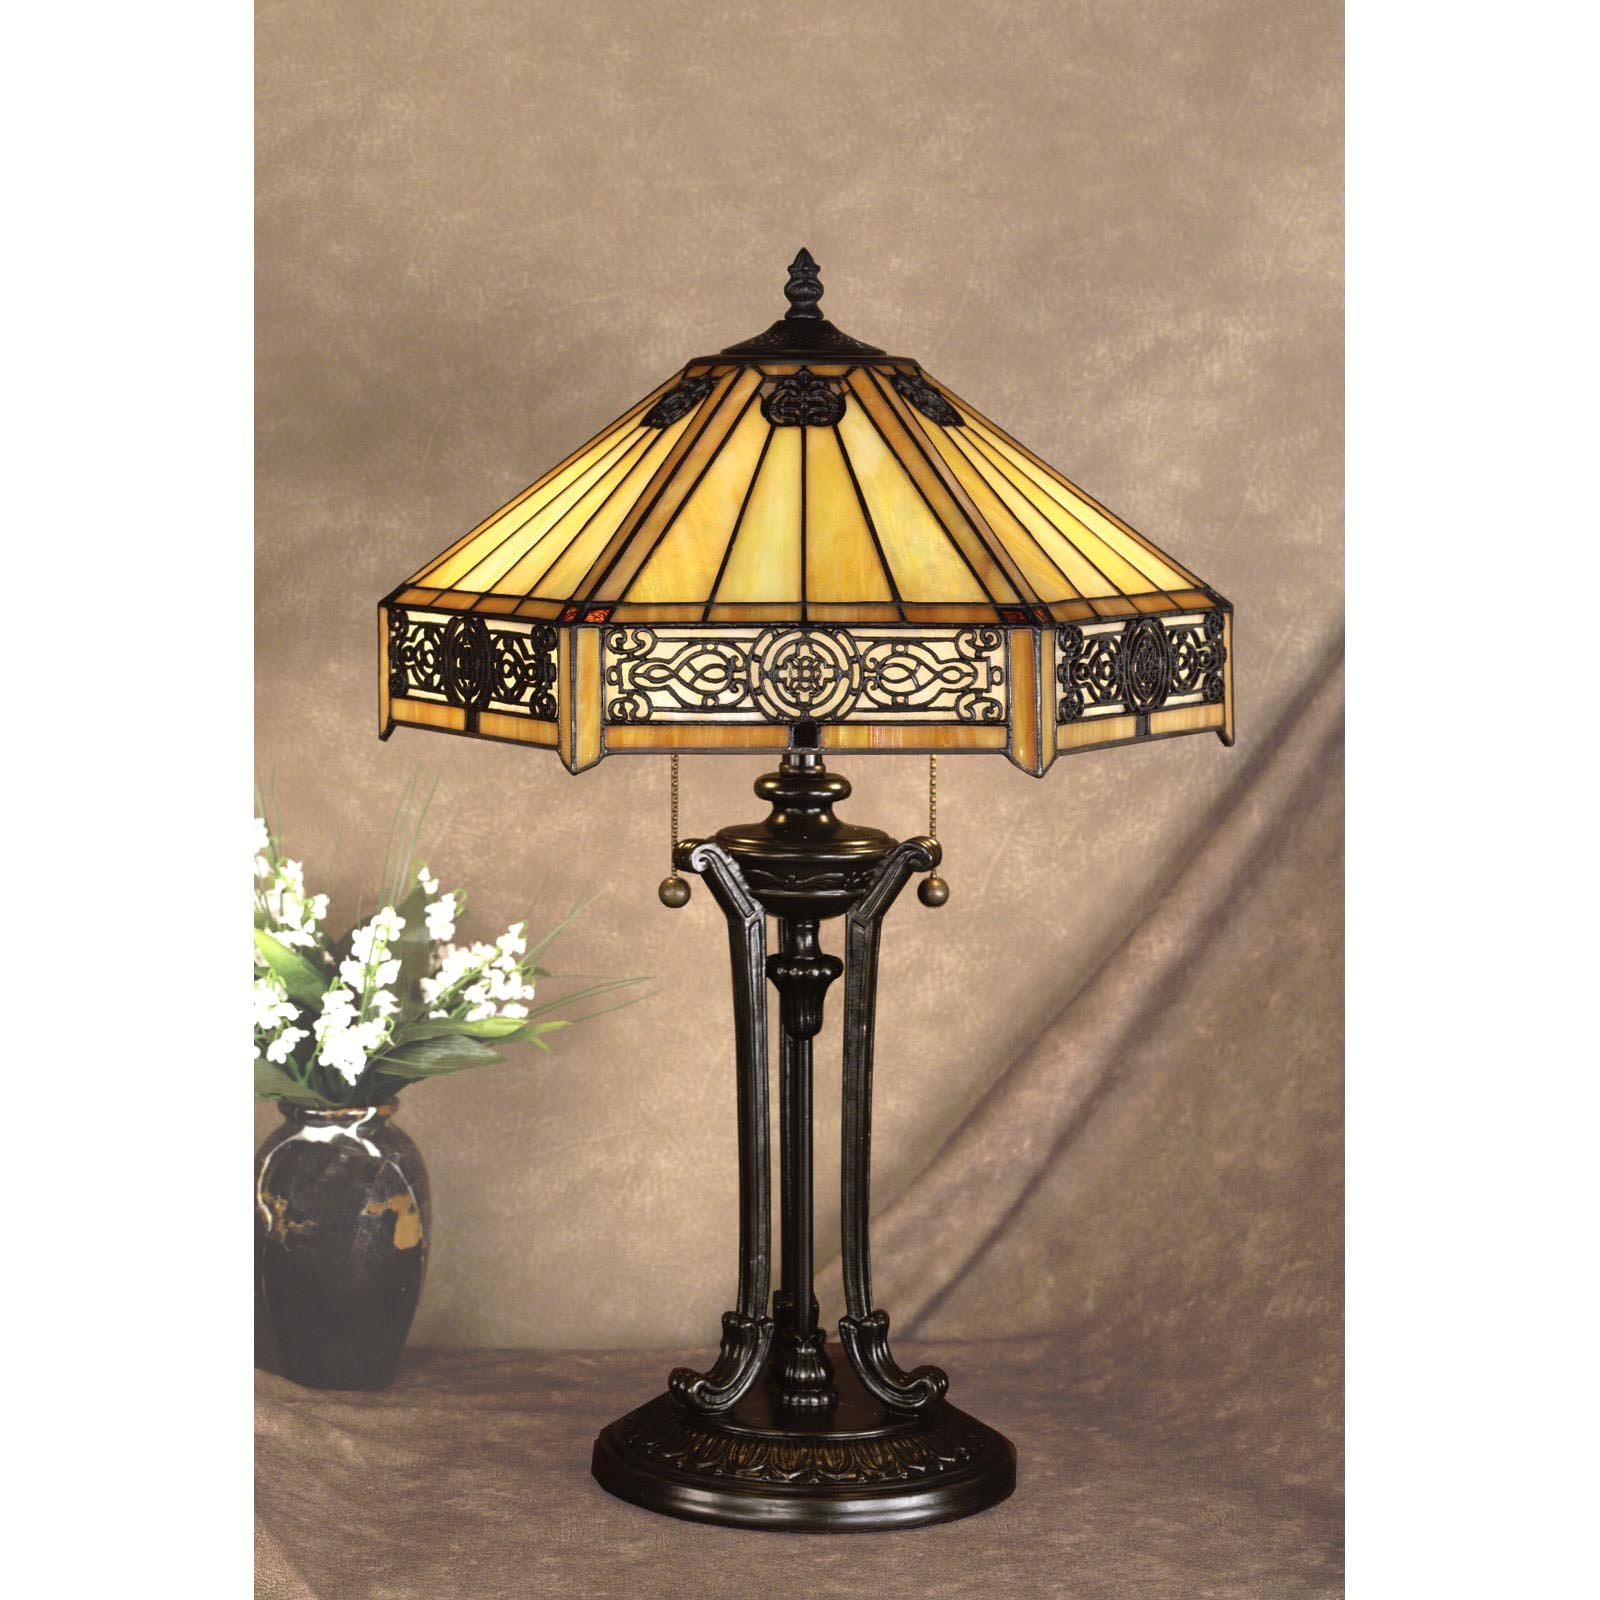 Tiffany lamp quoizel on deluxe interior for Tiffany lampen